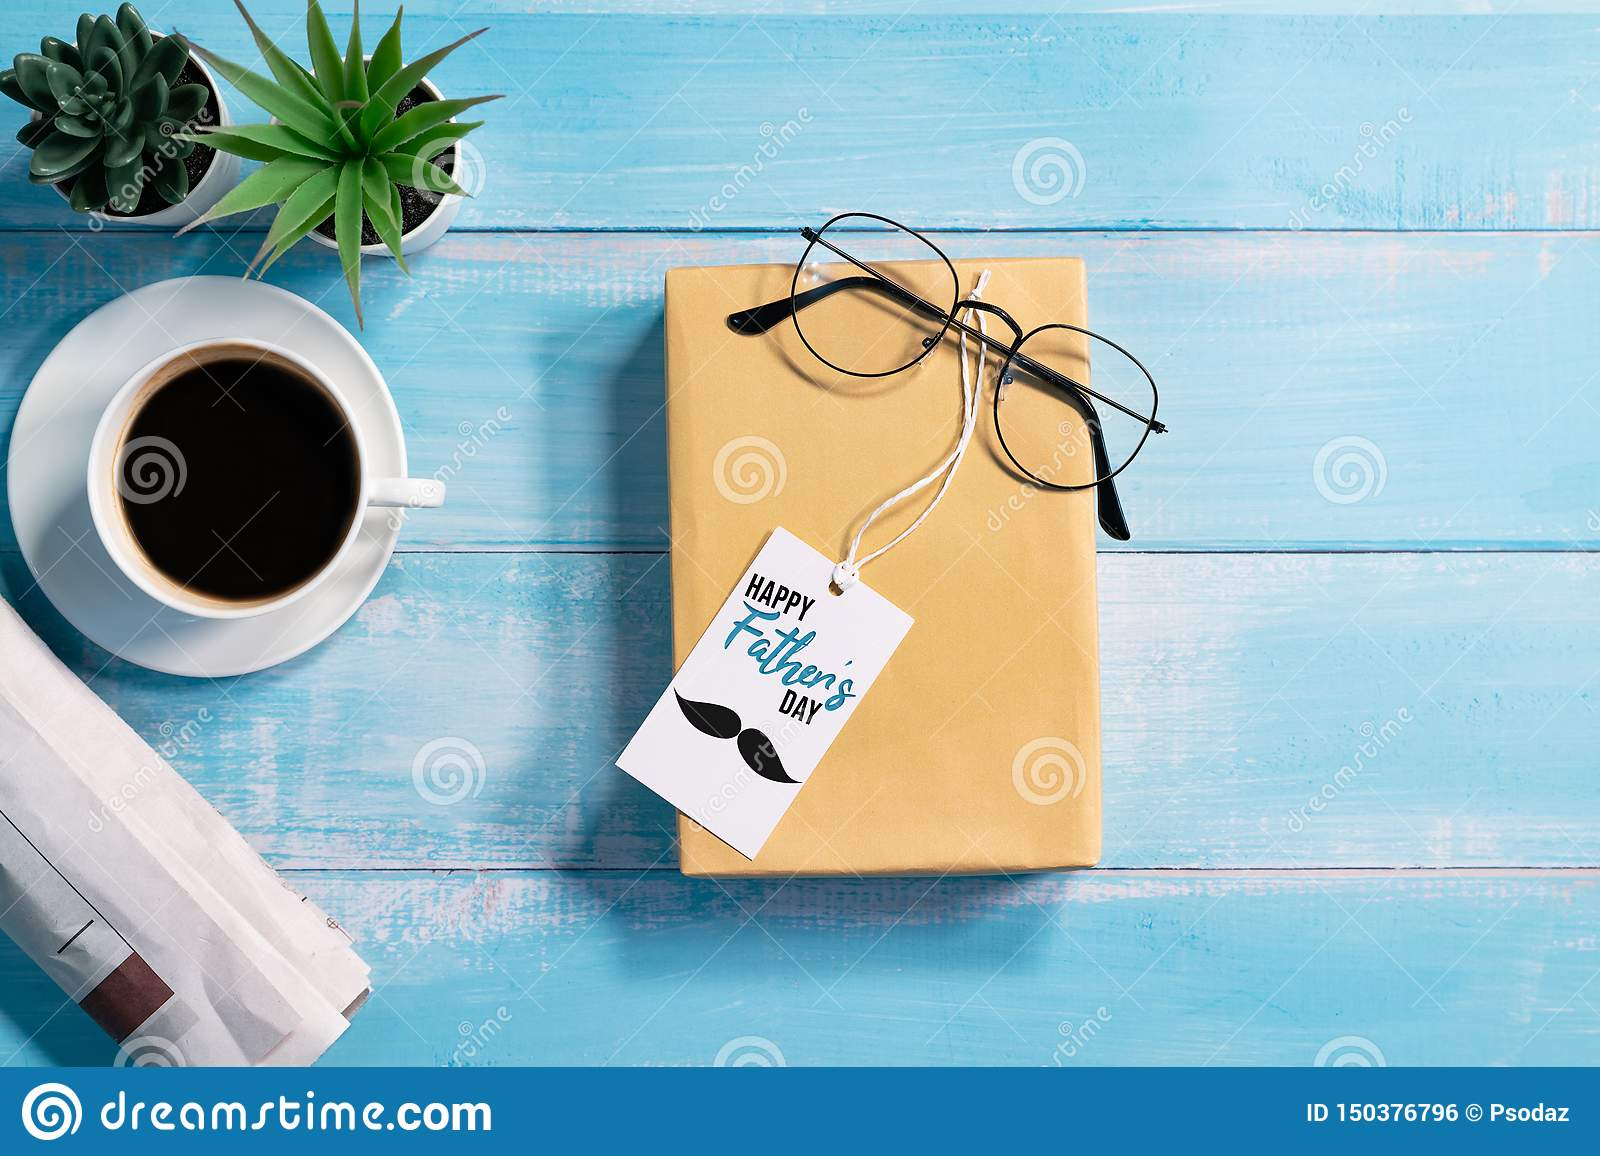 Happy Fathers Day Gift Box With A Cup Of Coffee And Eyeglasses Stock Photo Image Of Handmade Detail 150376796